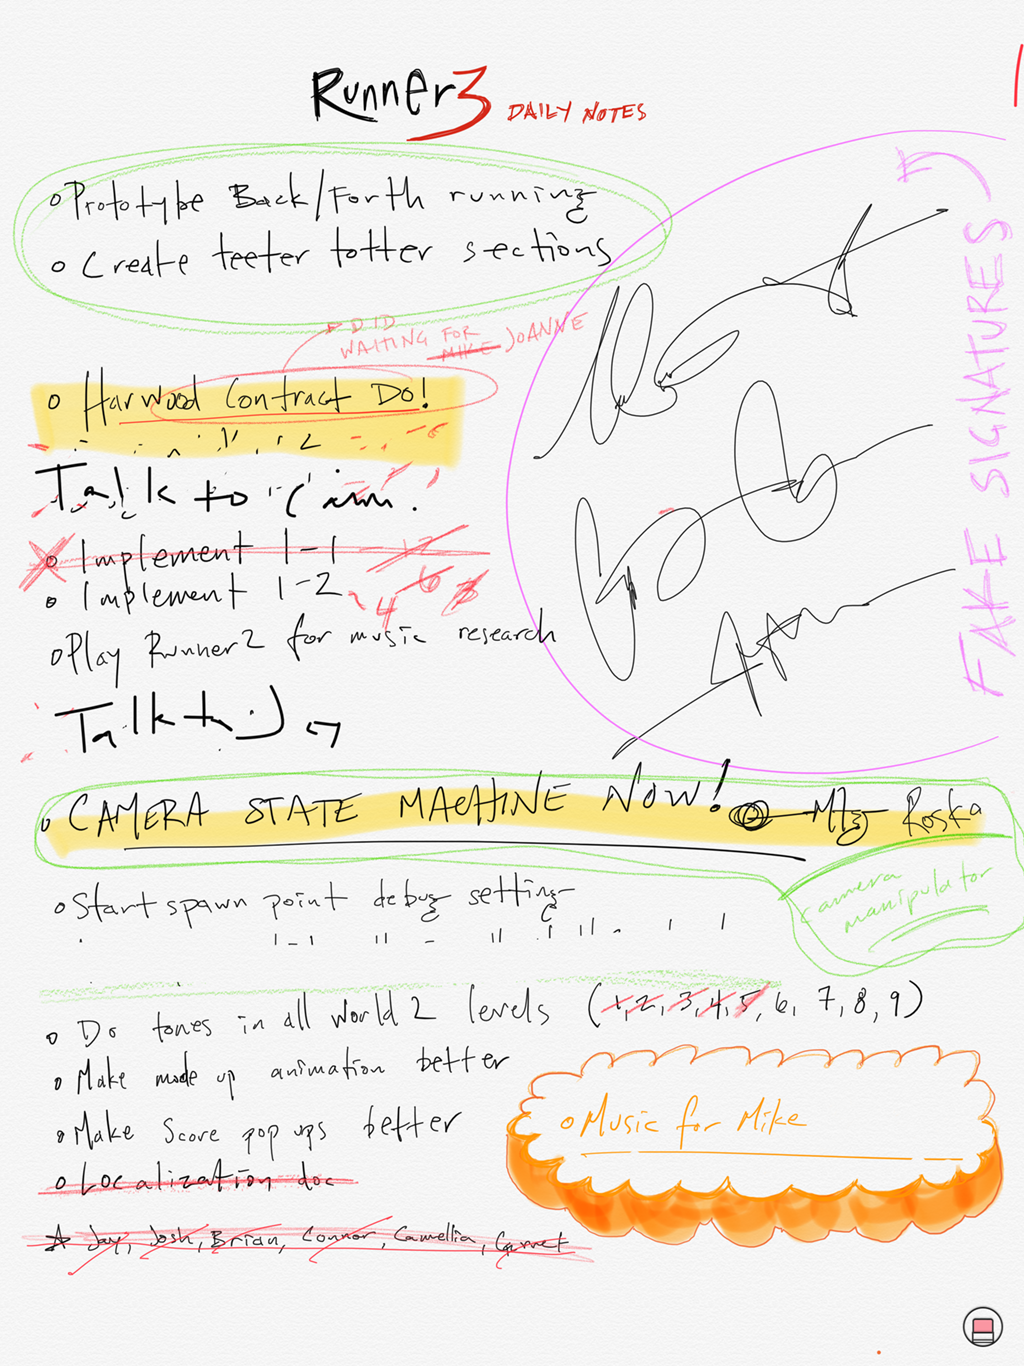 Runner3 - Daily Notes - 20170123.png